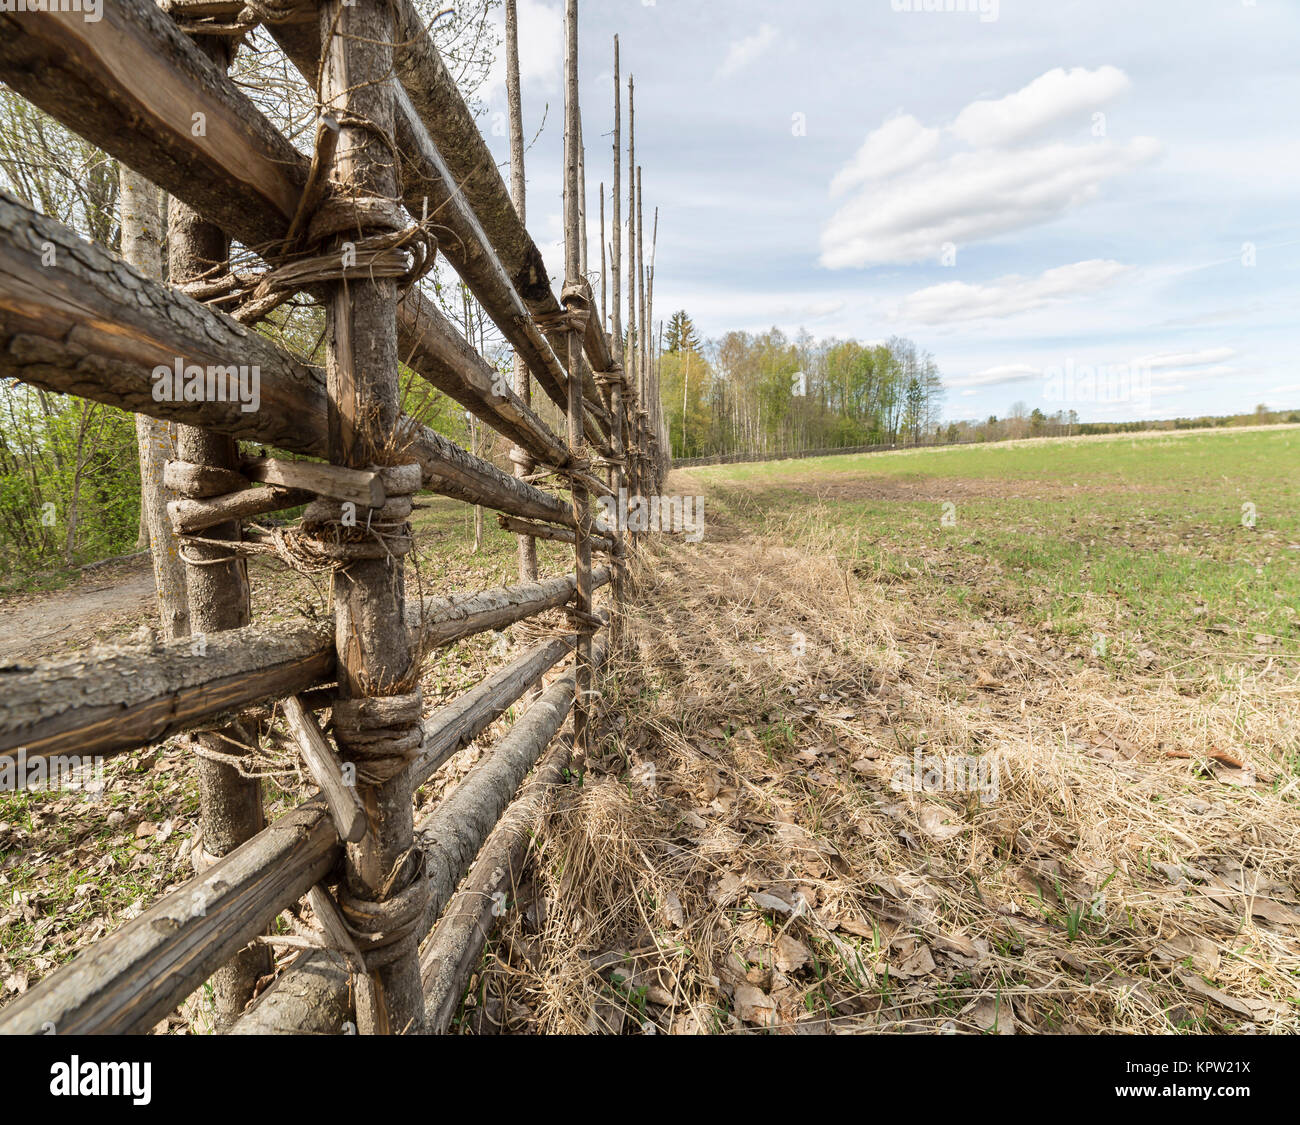 Swedish Farm Fence by Field - Stock Image